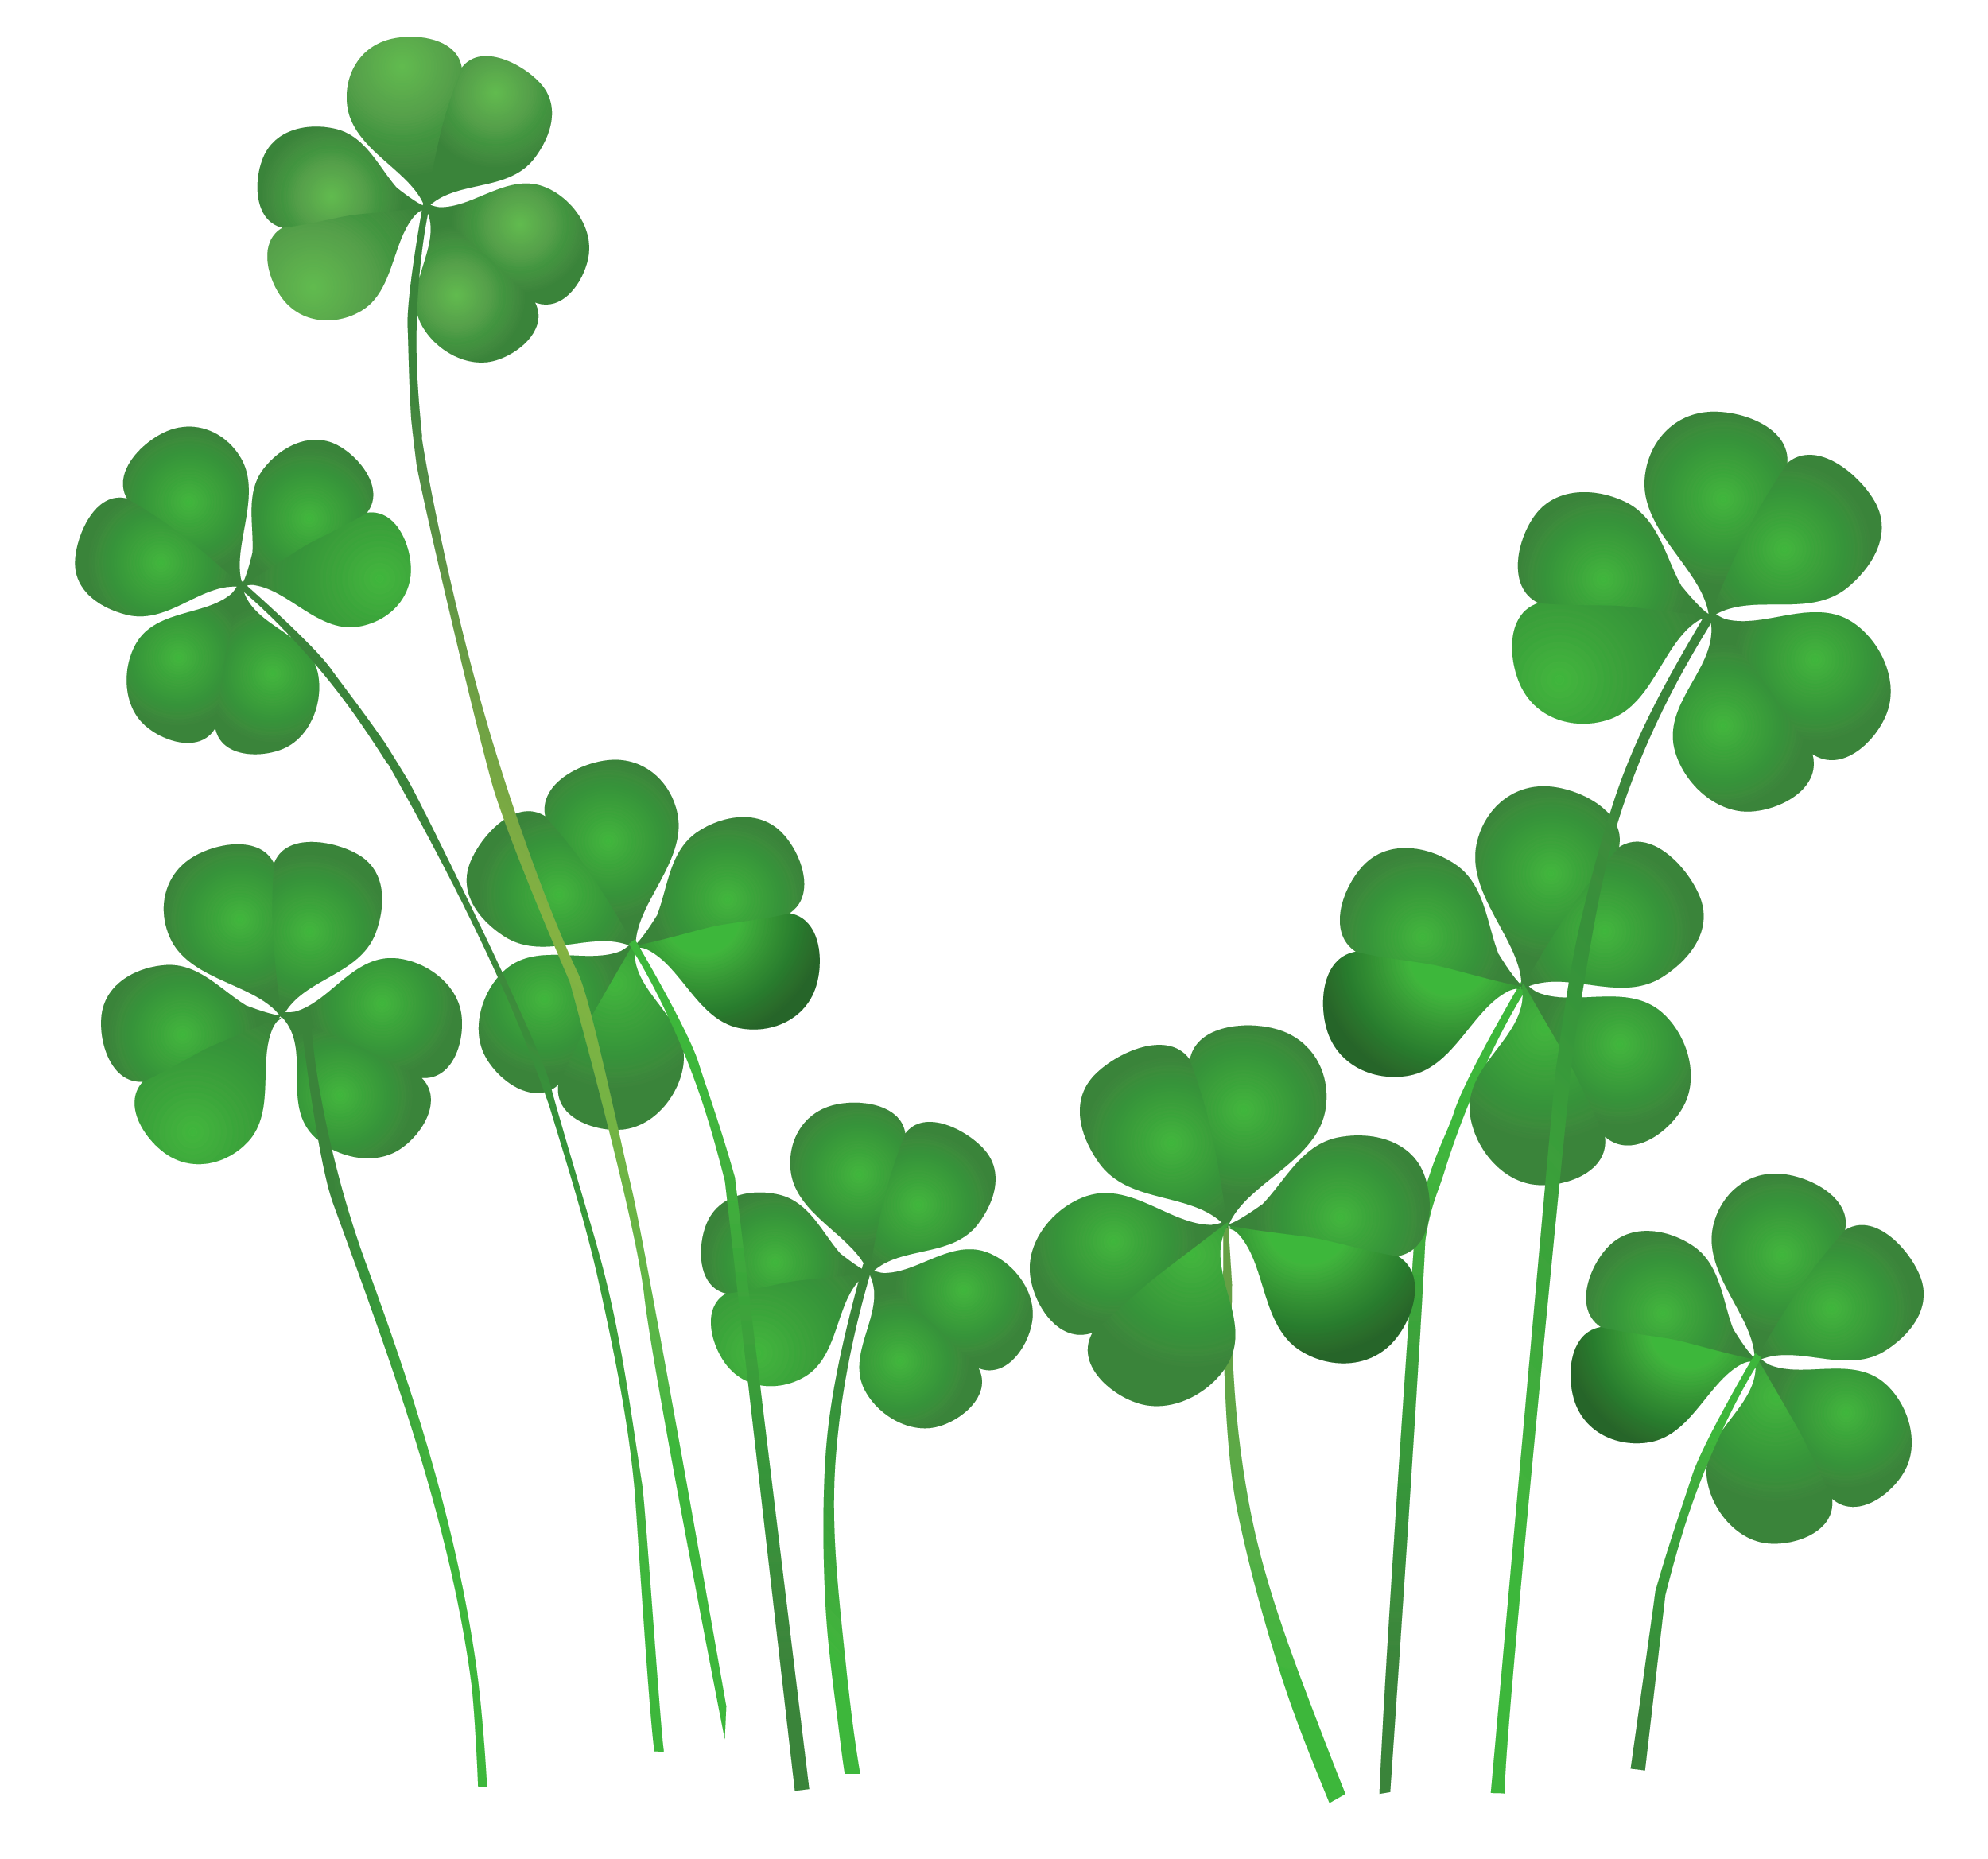 2017 clipart st patrick's day. Patrick s weekend news